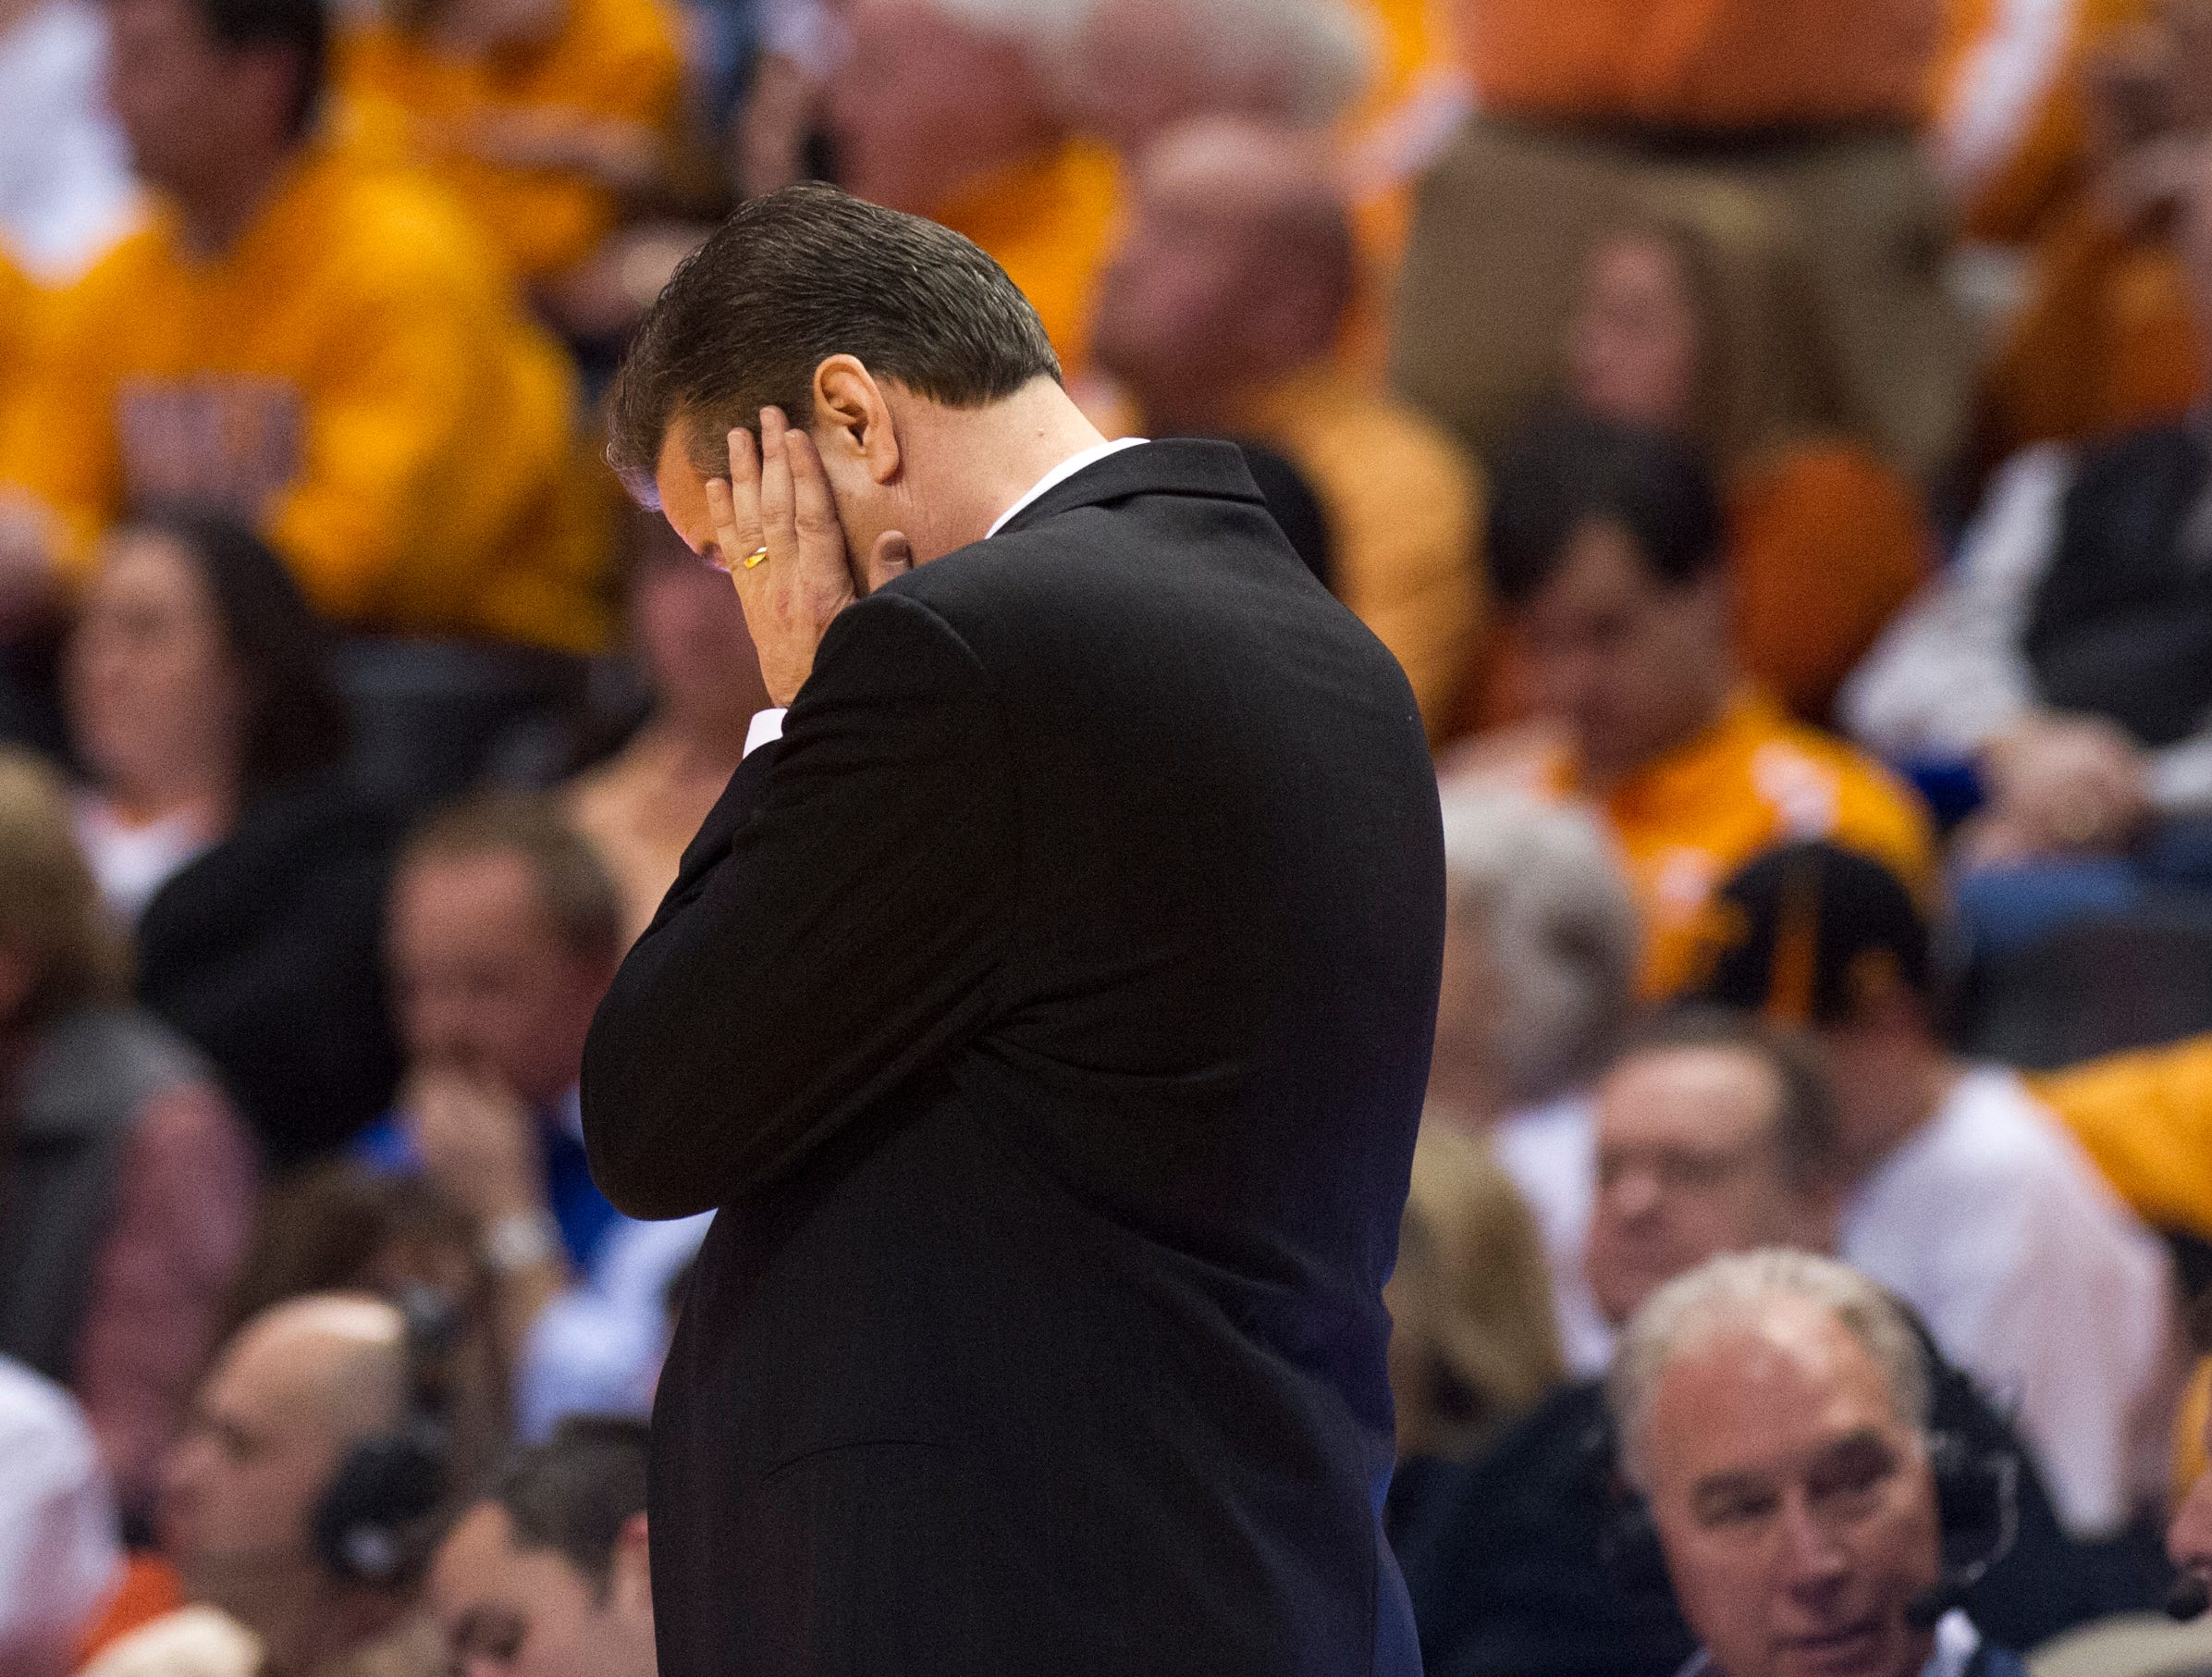 Kentucky head coach John Calipari reacts after a foul was called on his team during the first half against Tennessee at Thompson-Boling Arena Saturday, Feb. 16, 2013.